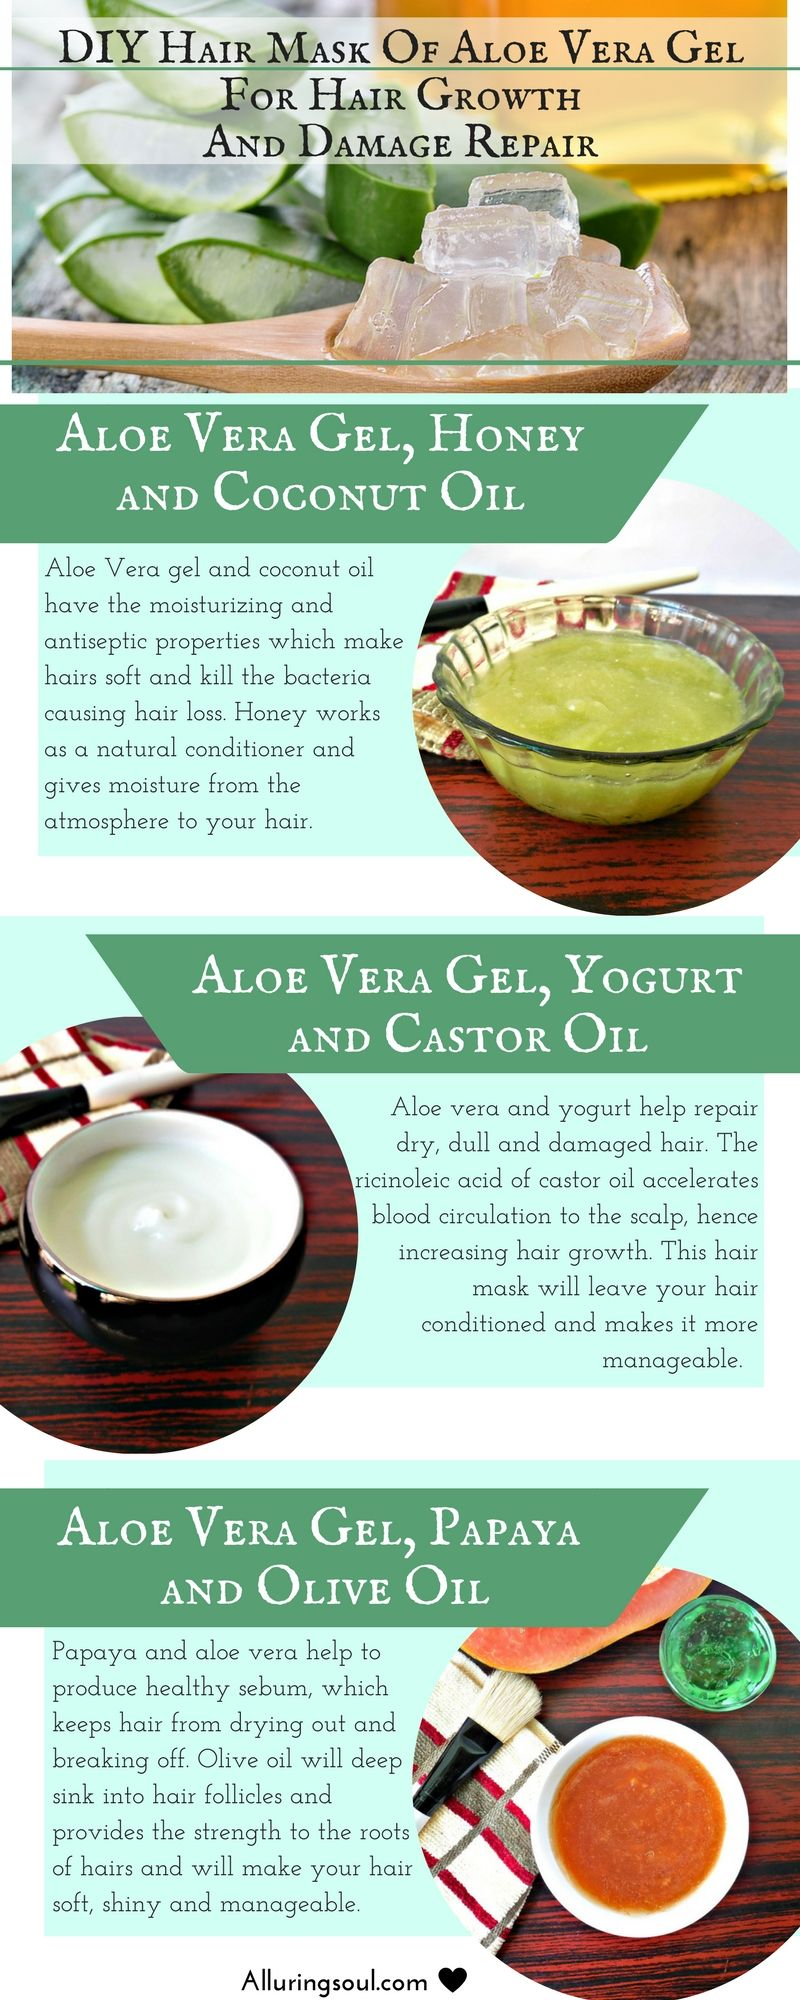 Hair Care Advice For Picture Perfect Locks Aloe Vera Gel For